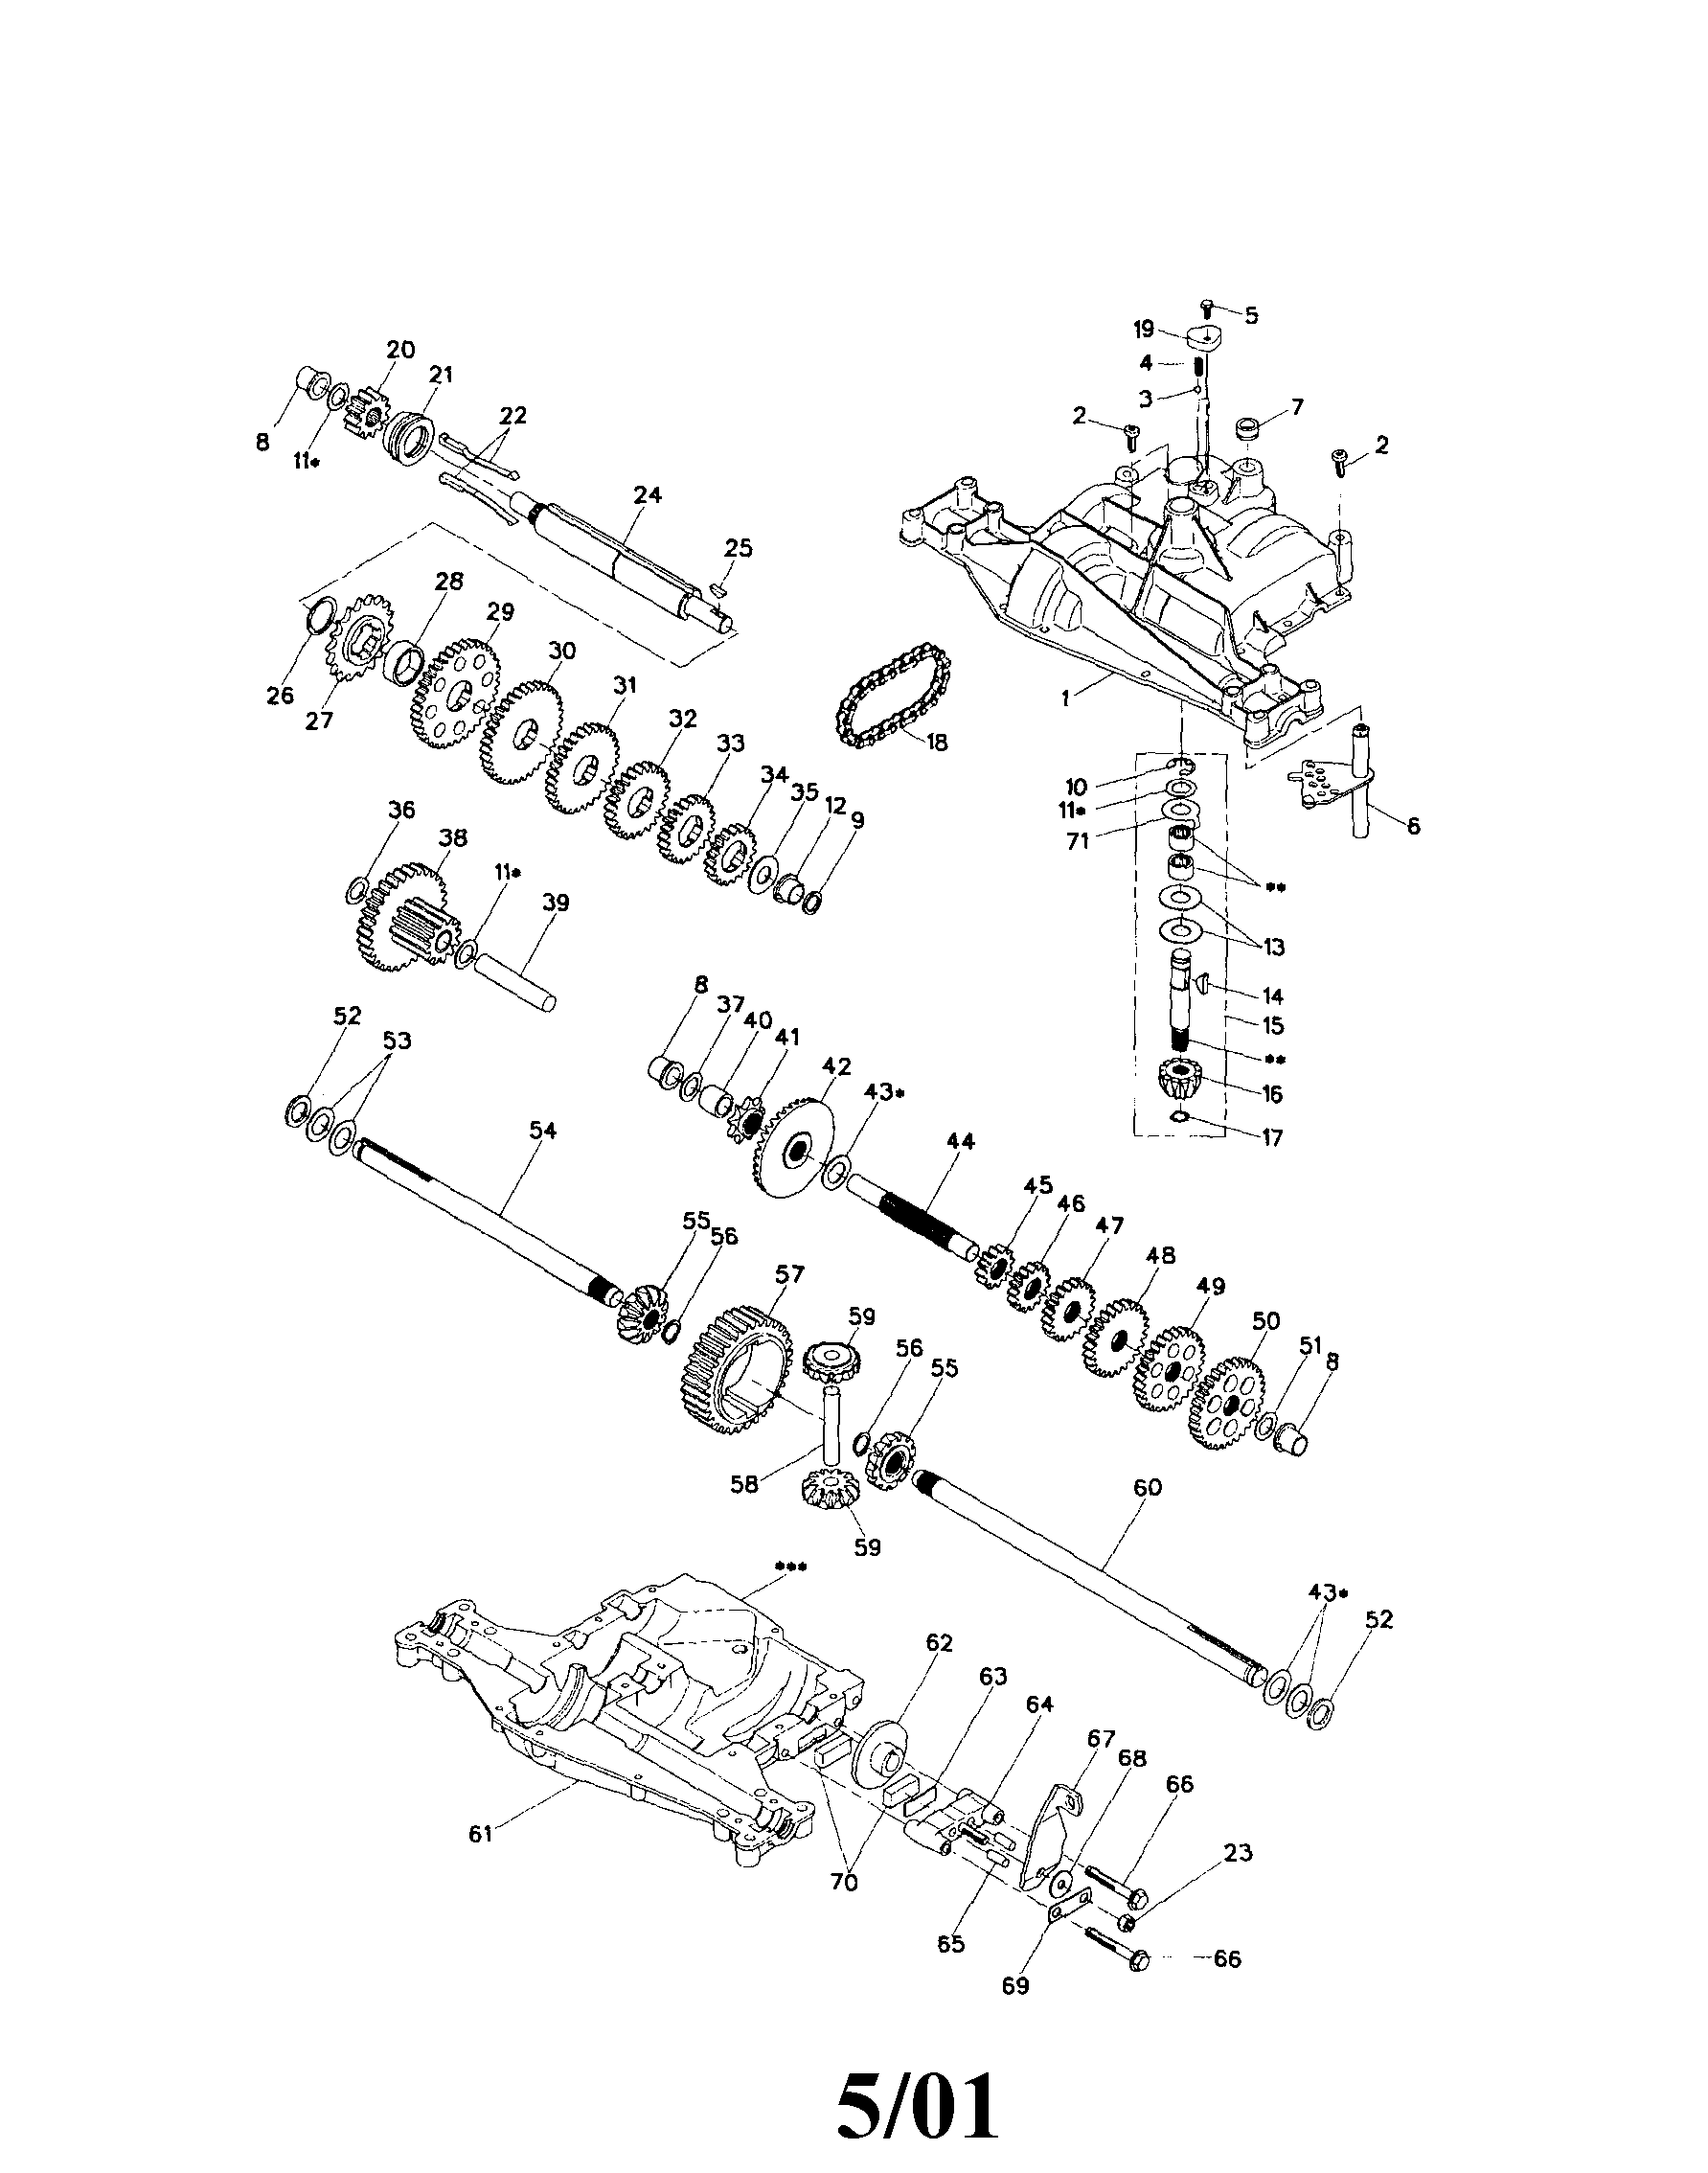 Footedana 4360-140 dana transaxle diagram